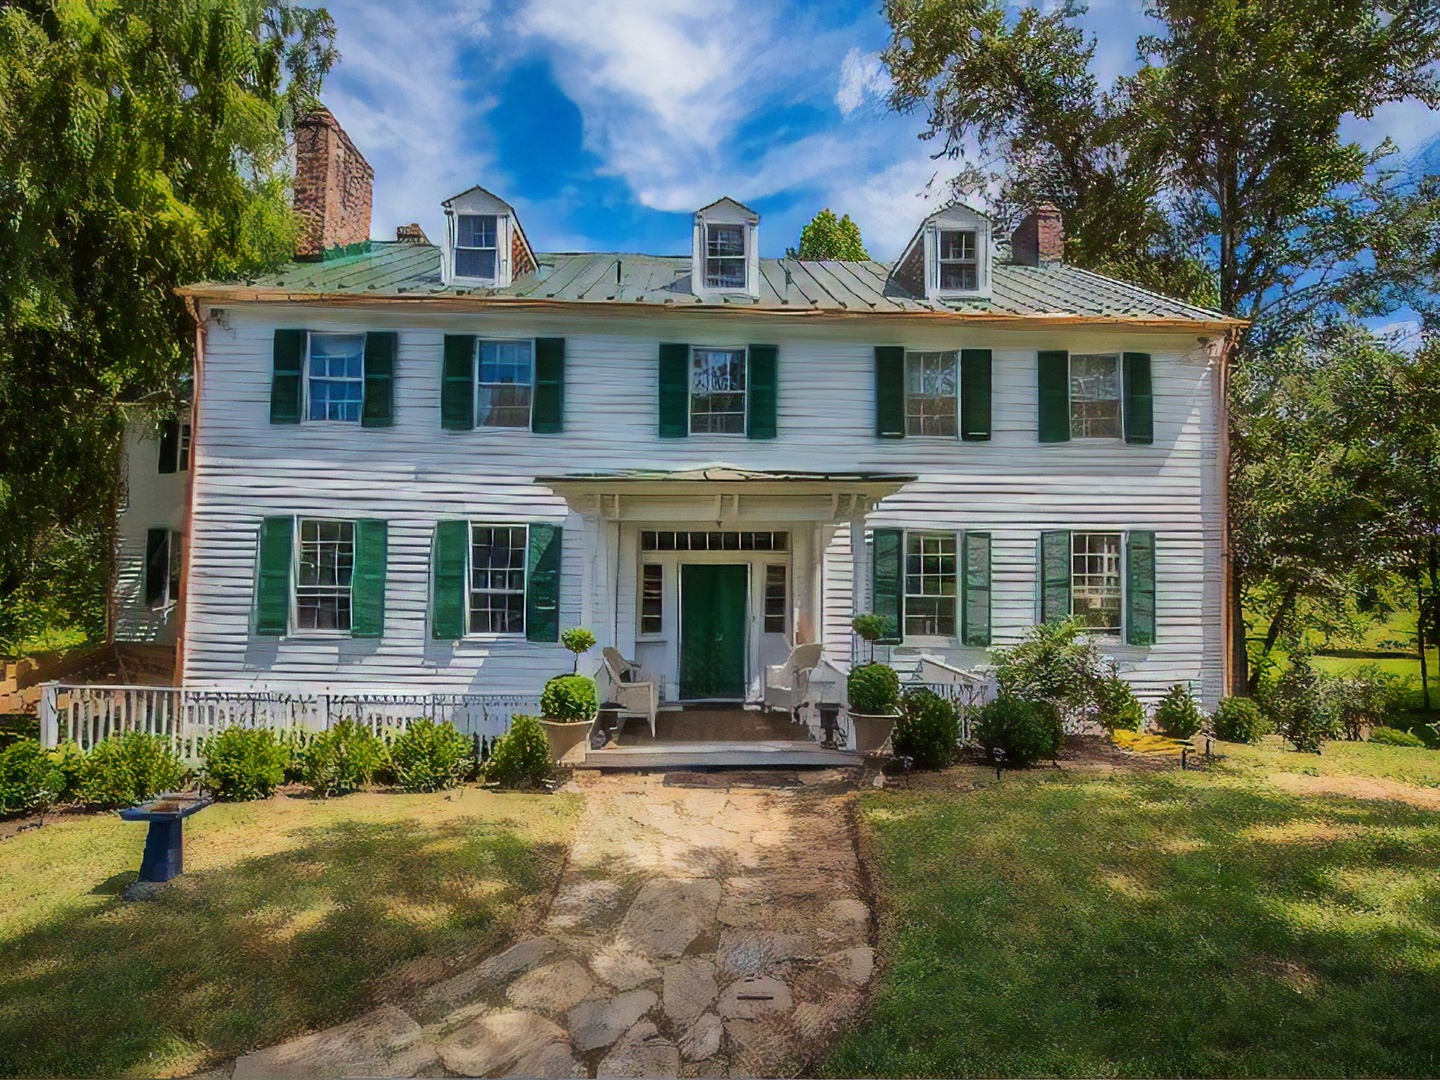 Purcellville Bed and Breakfast